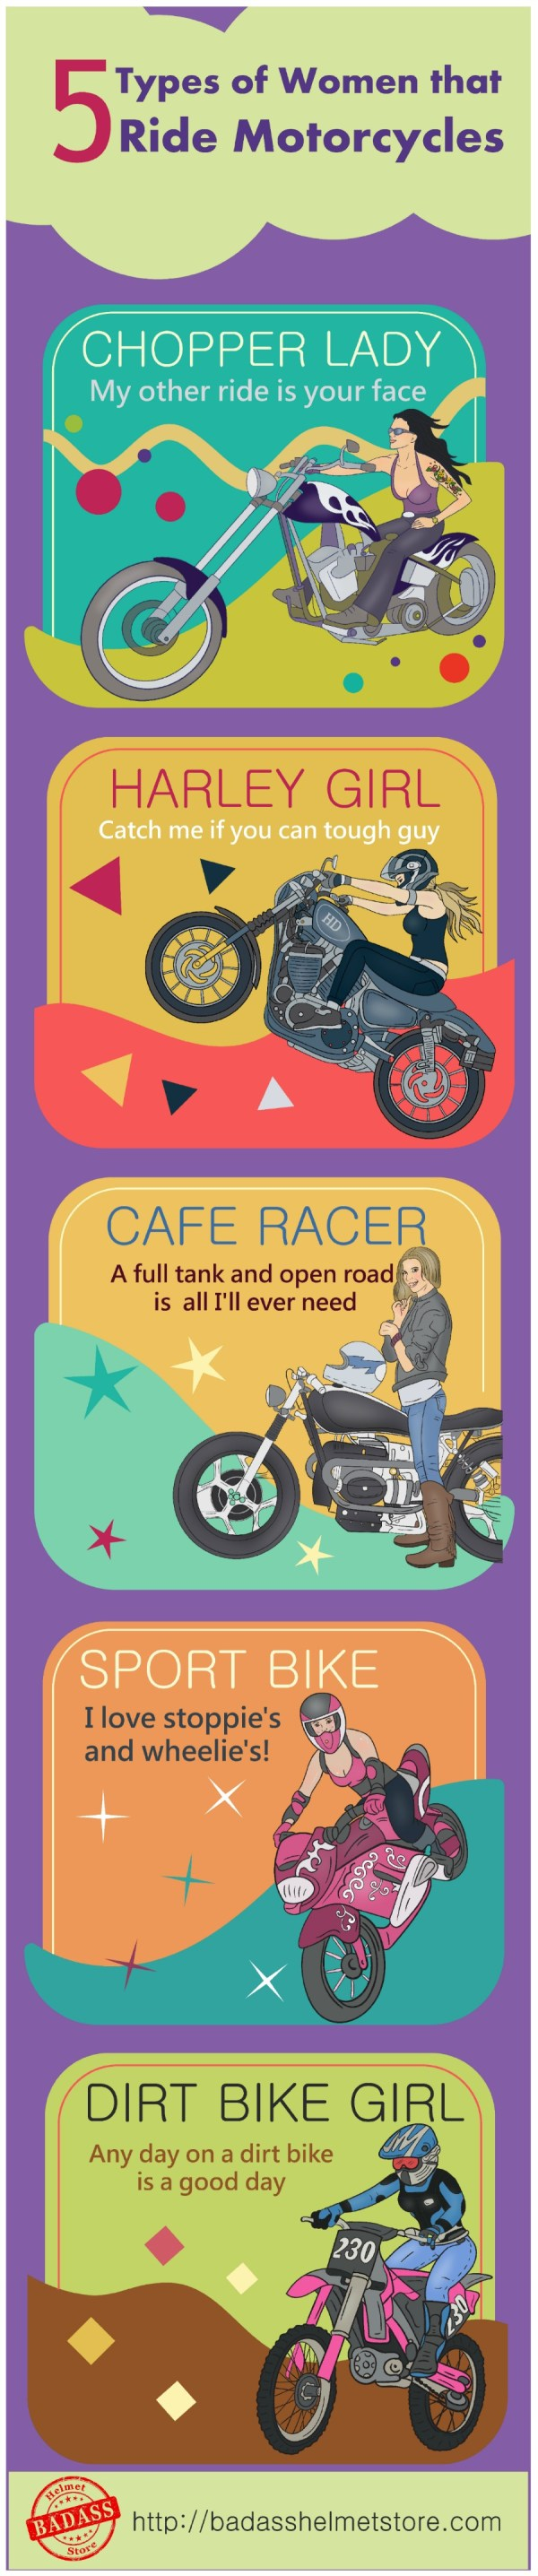 5-Types-of-Women-that-ride-Motorcycles-Infographic